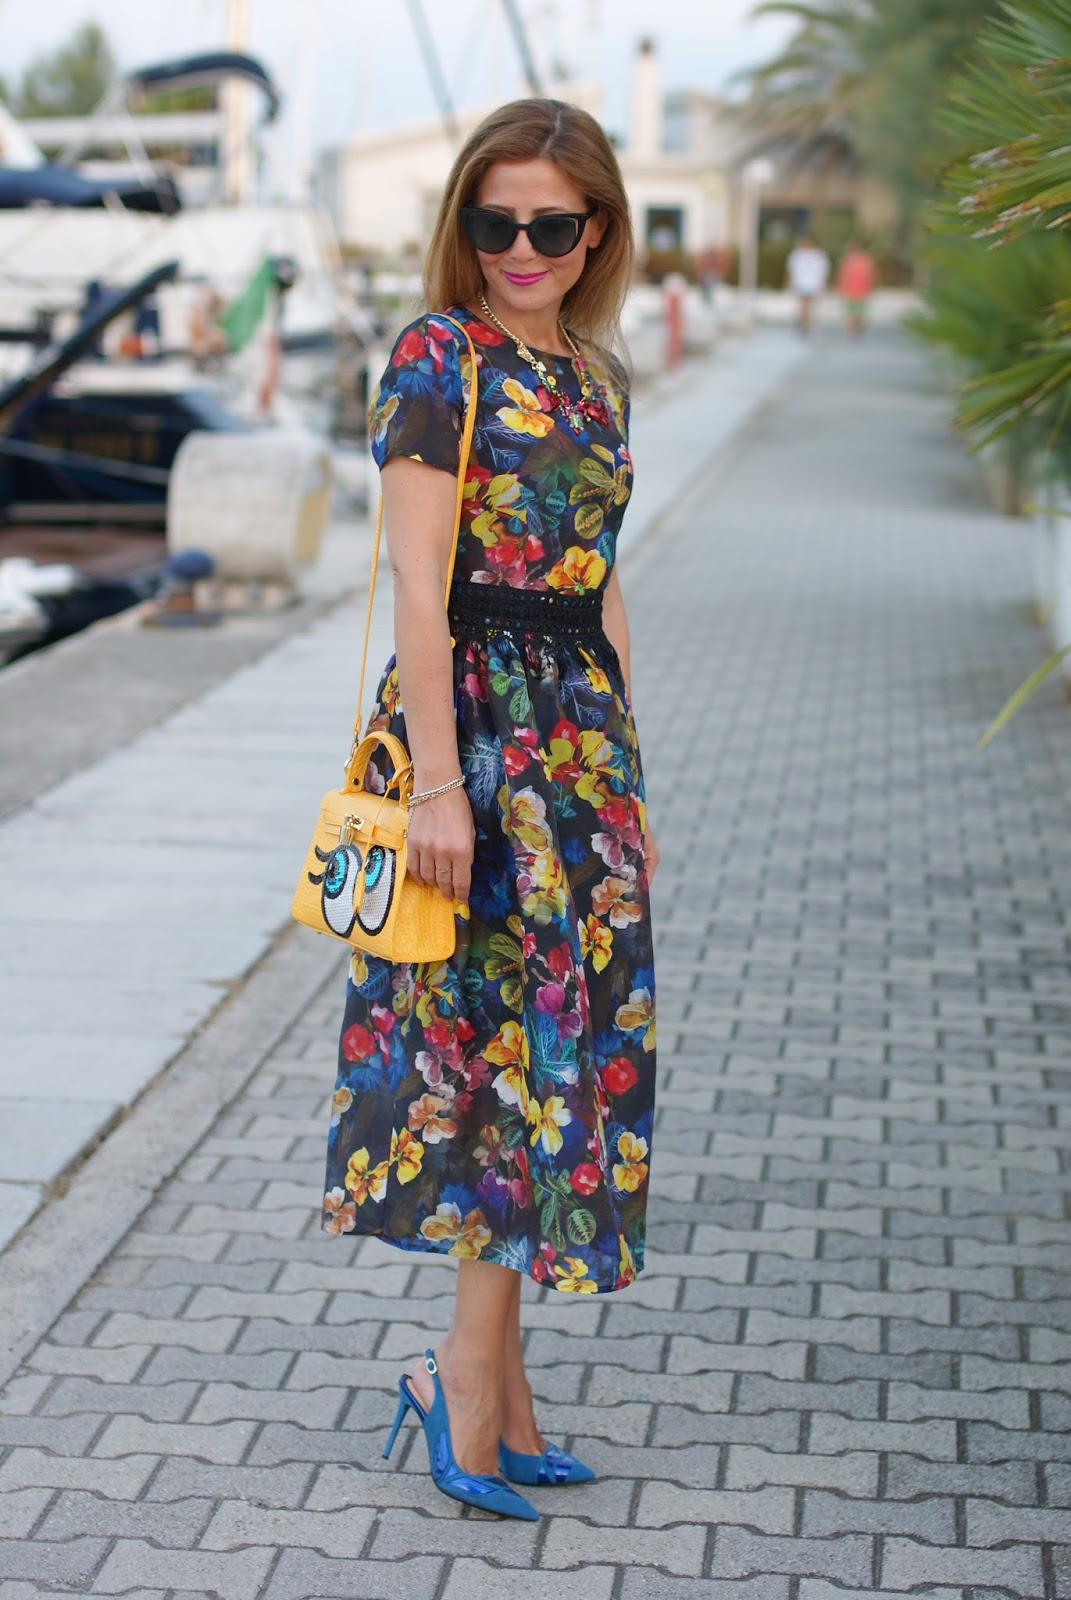 Dezzal review, floral cocktail midi dress on Fashion and Cookies fashion blog, fashion blogger style